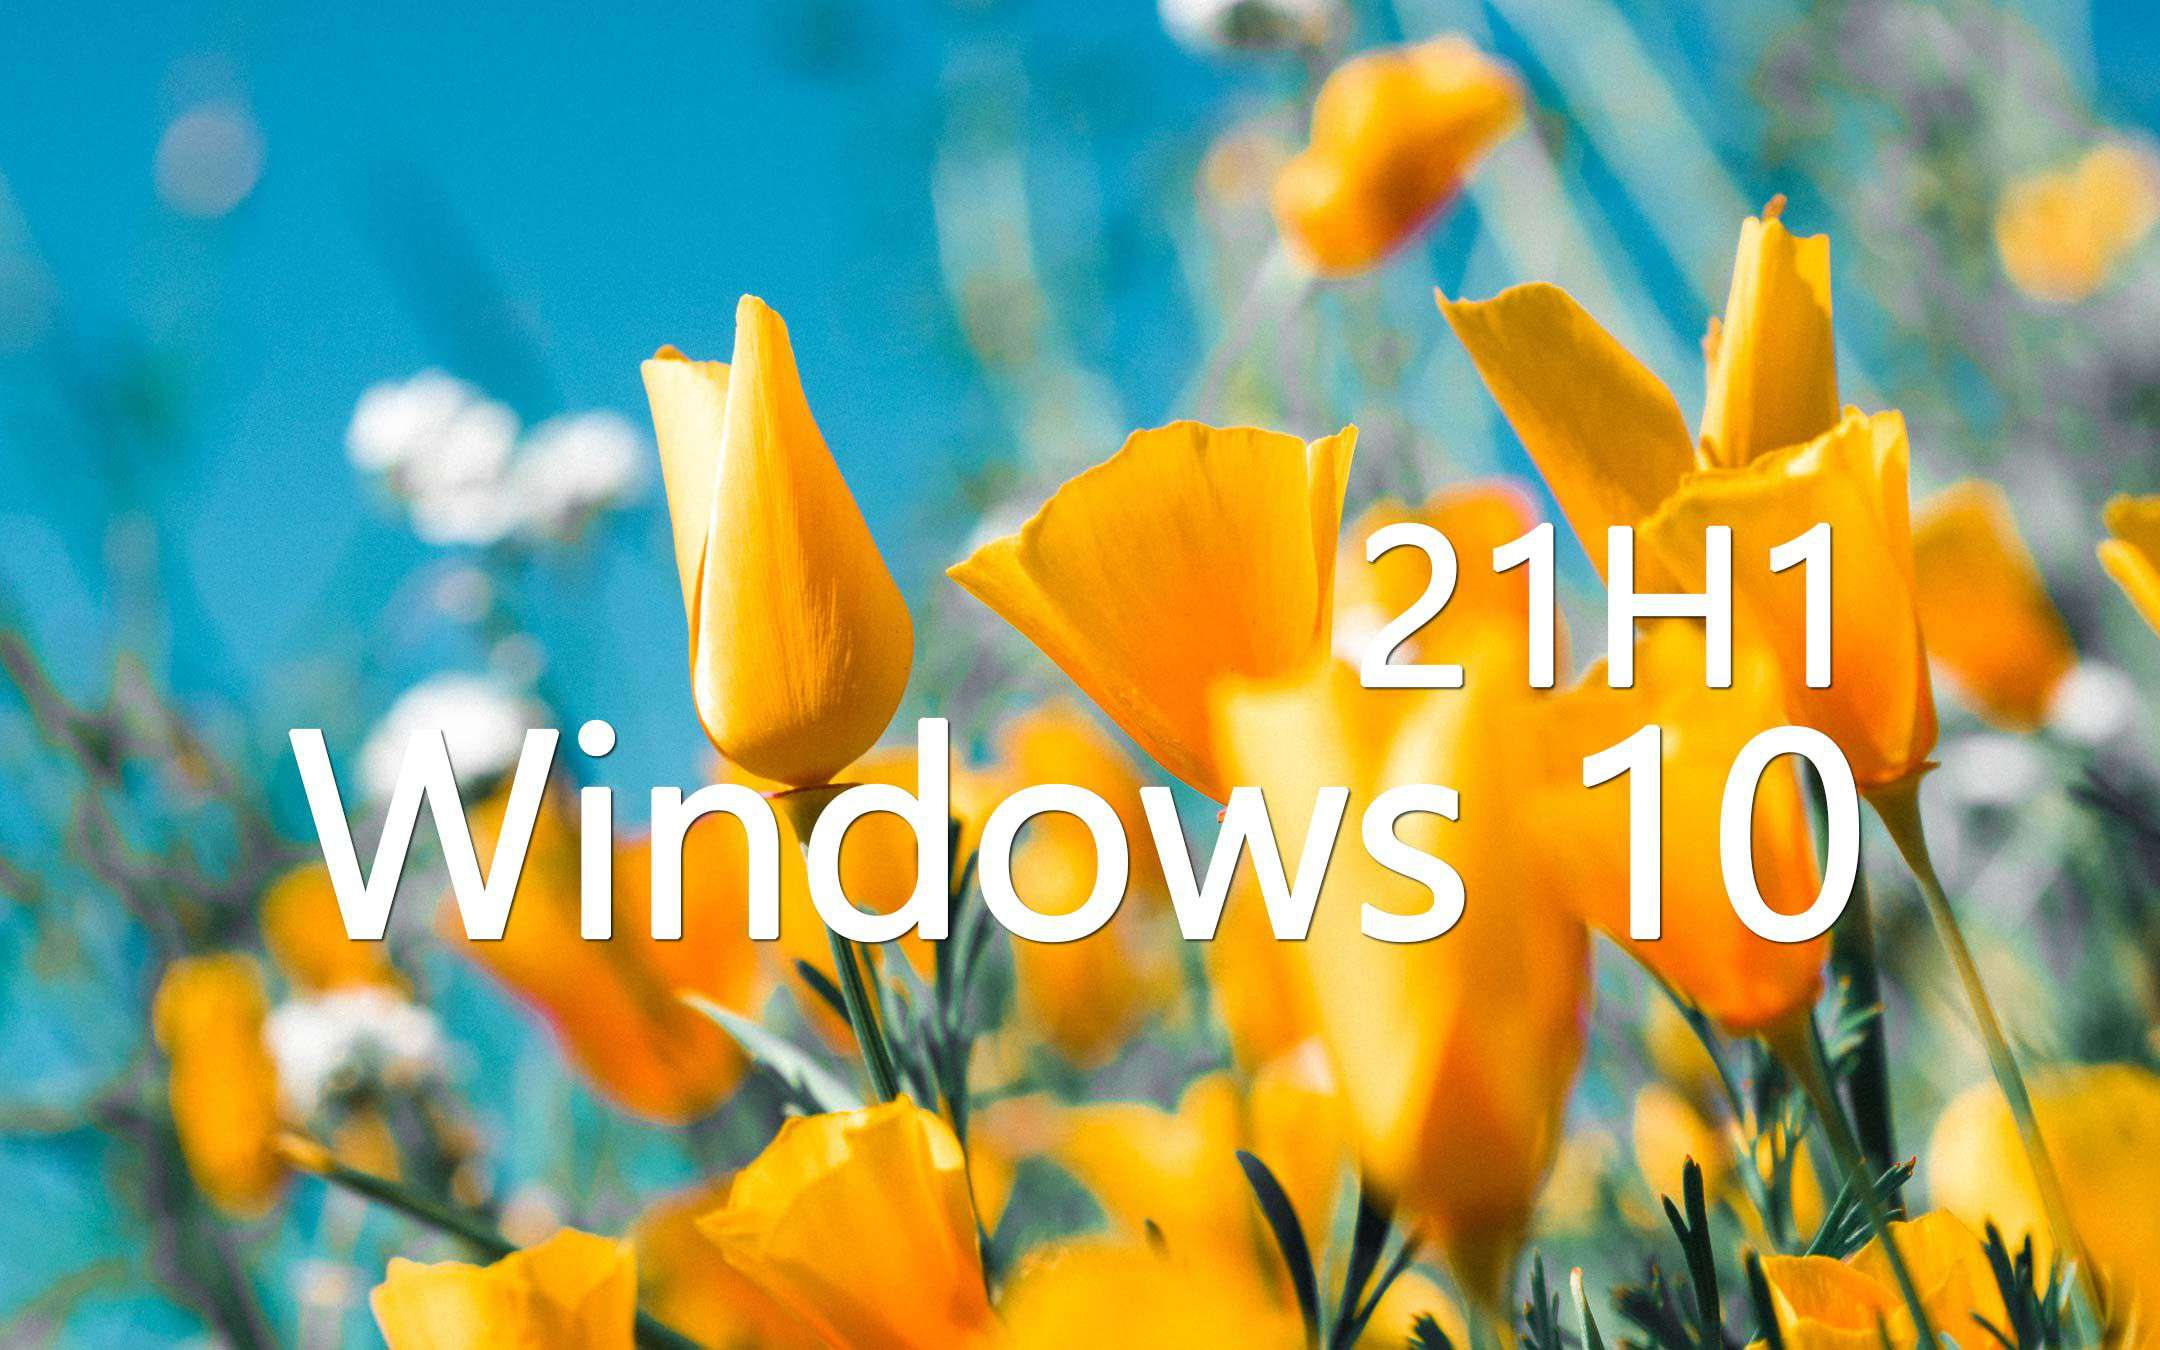 Windows 10 - cover